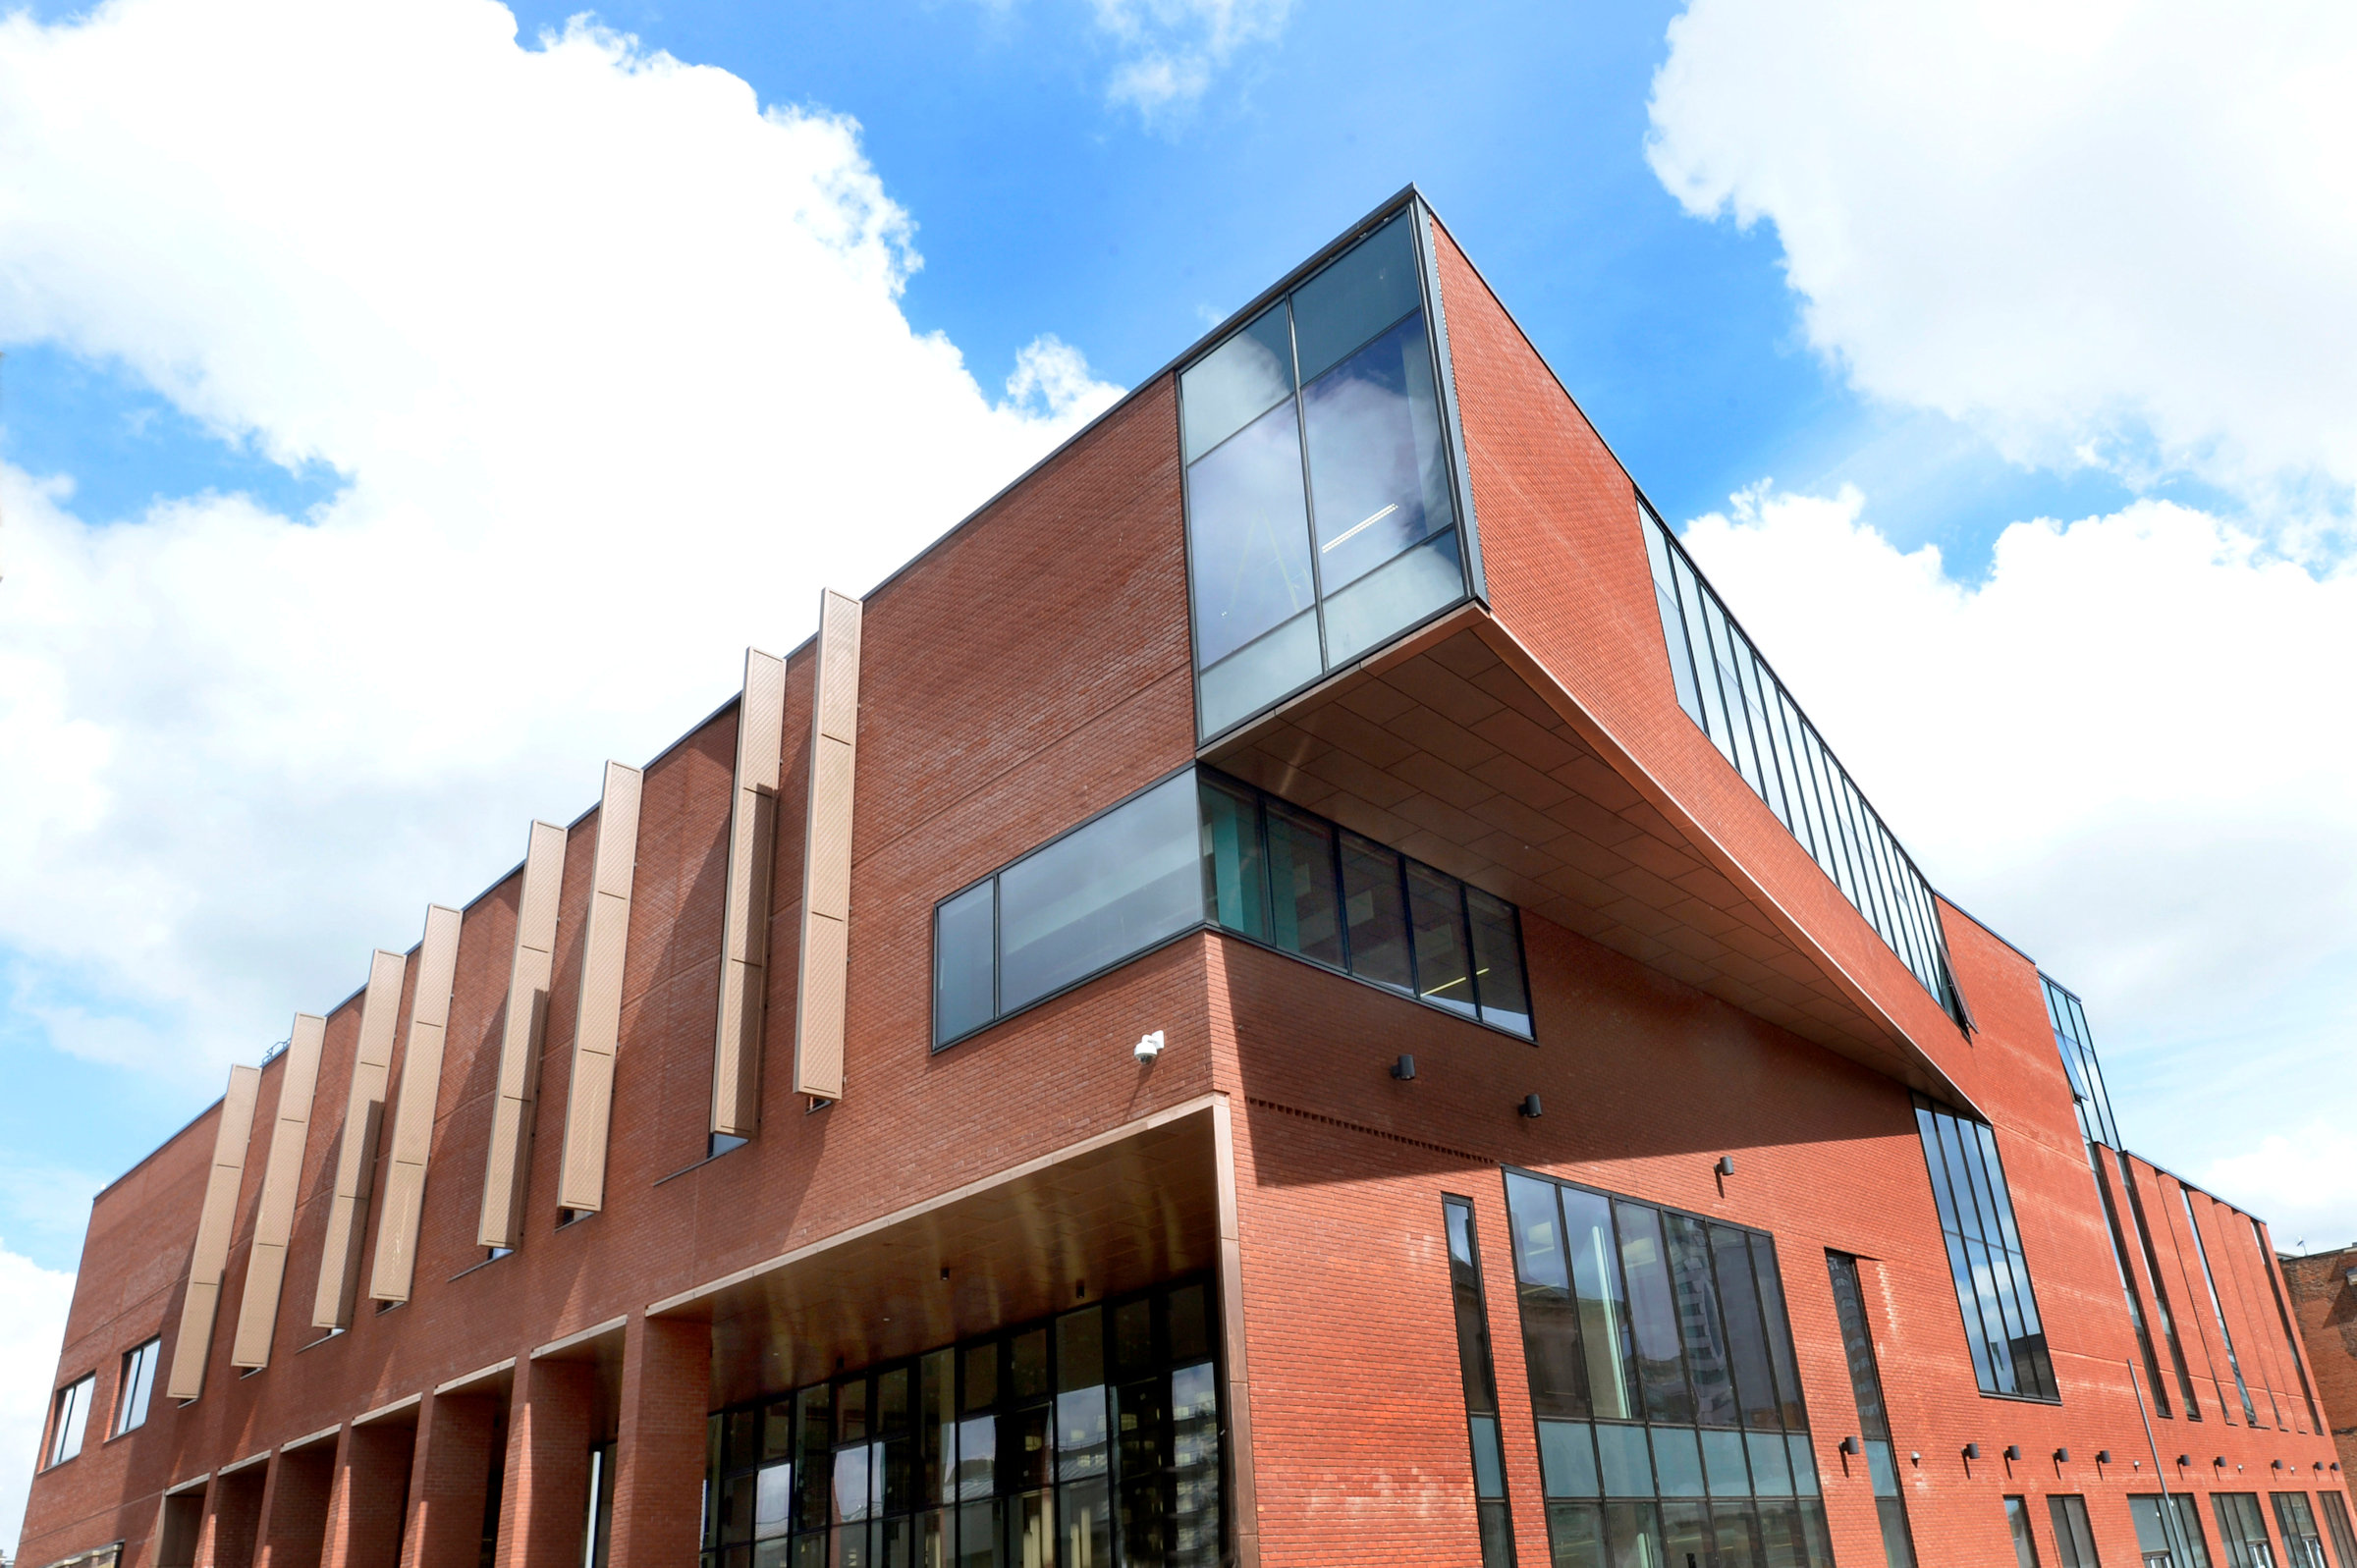 The importance of using university facilities and services: Part 2